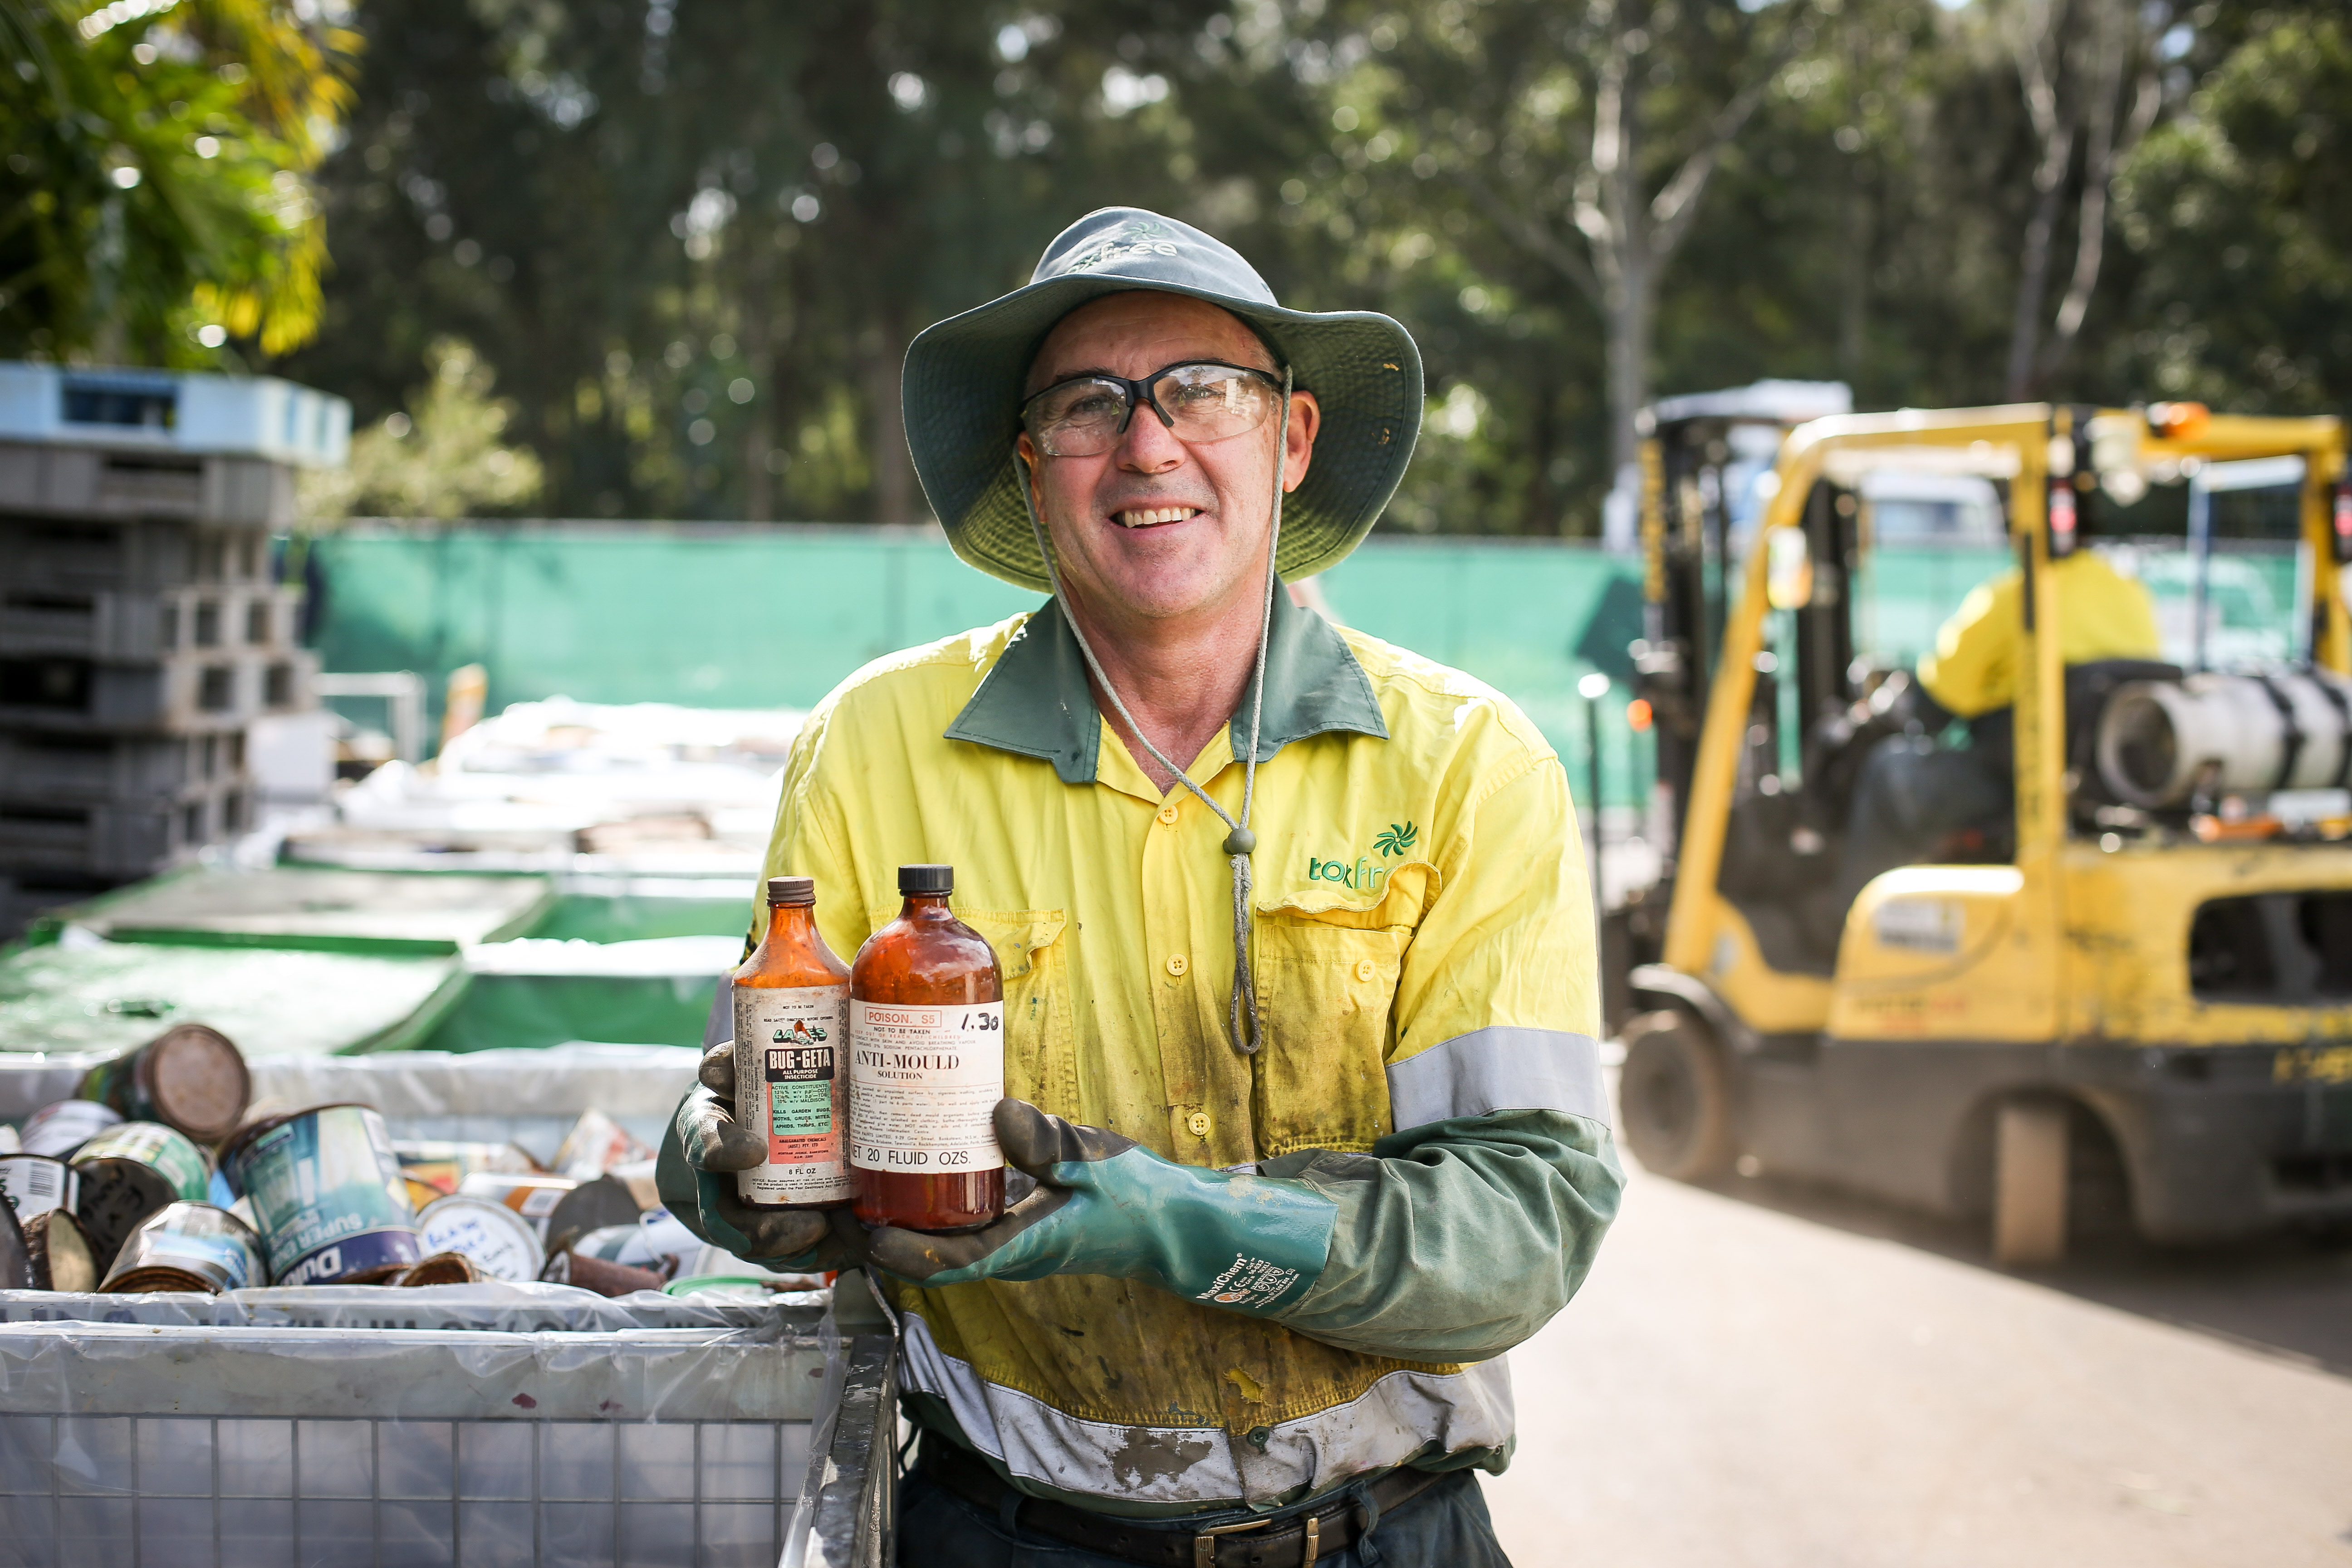 City of Sydney hosts free household chemical cleanout day